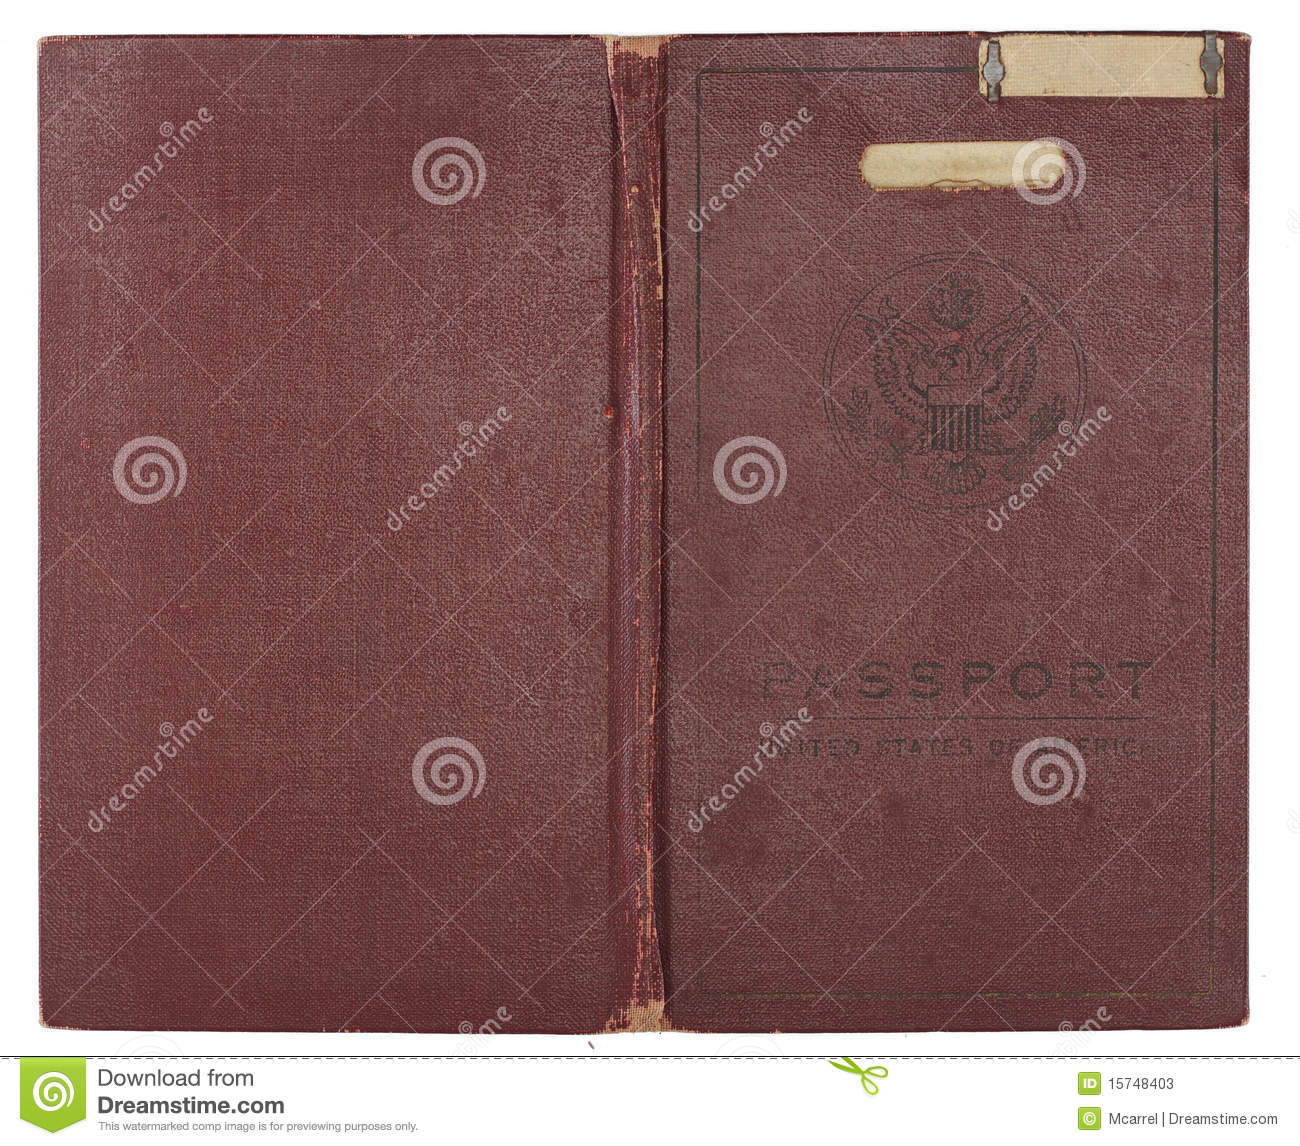 Vintage United States Passport Cover Stock Photos - Image ...